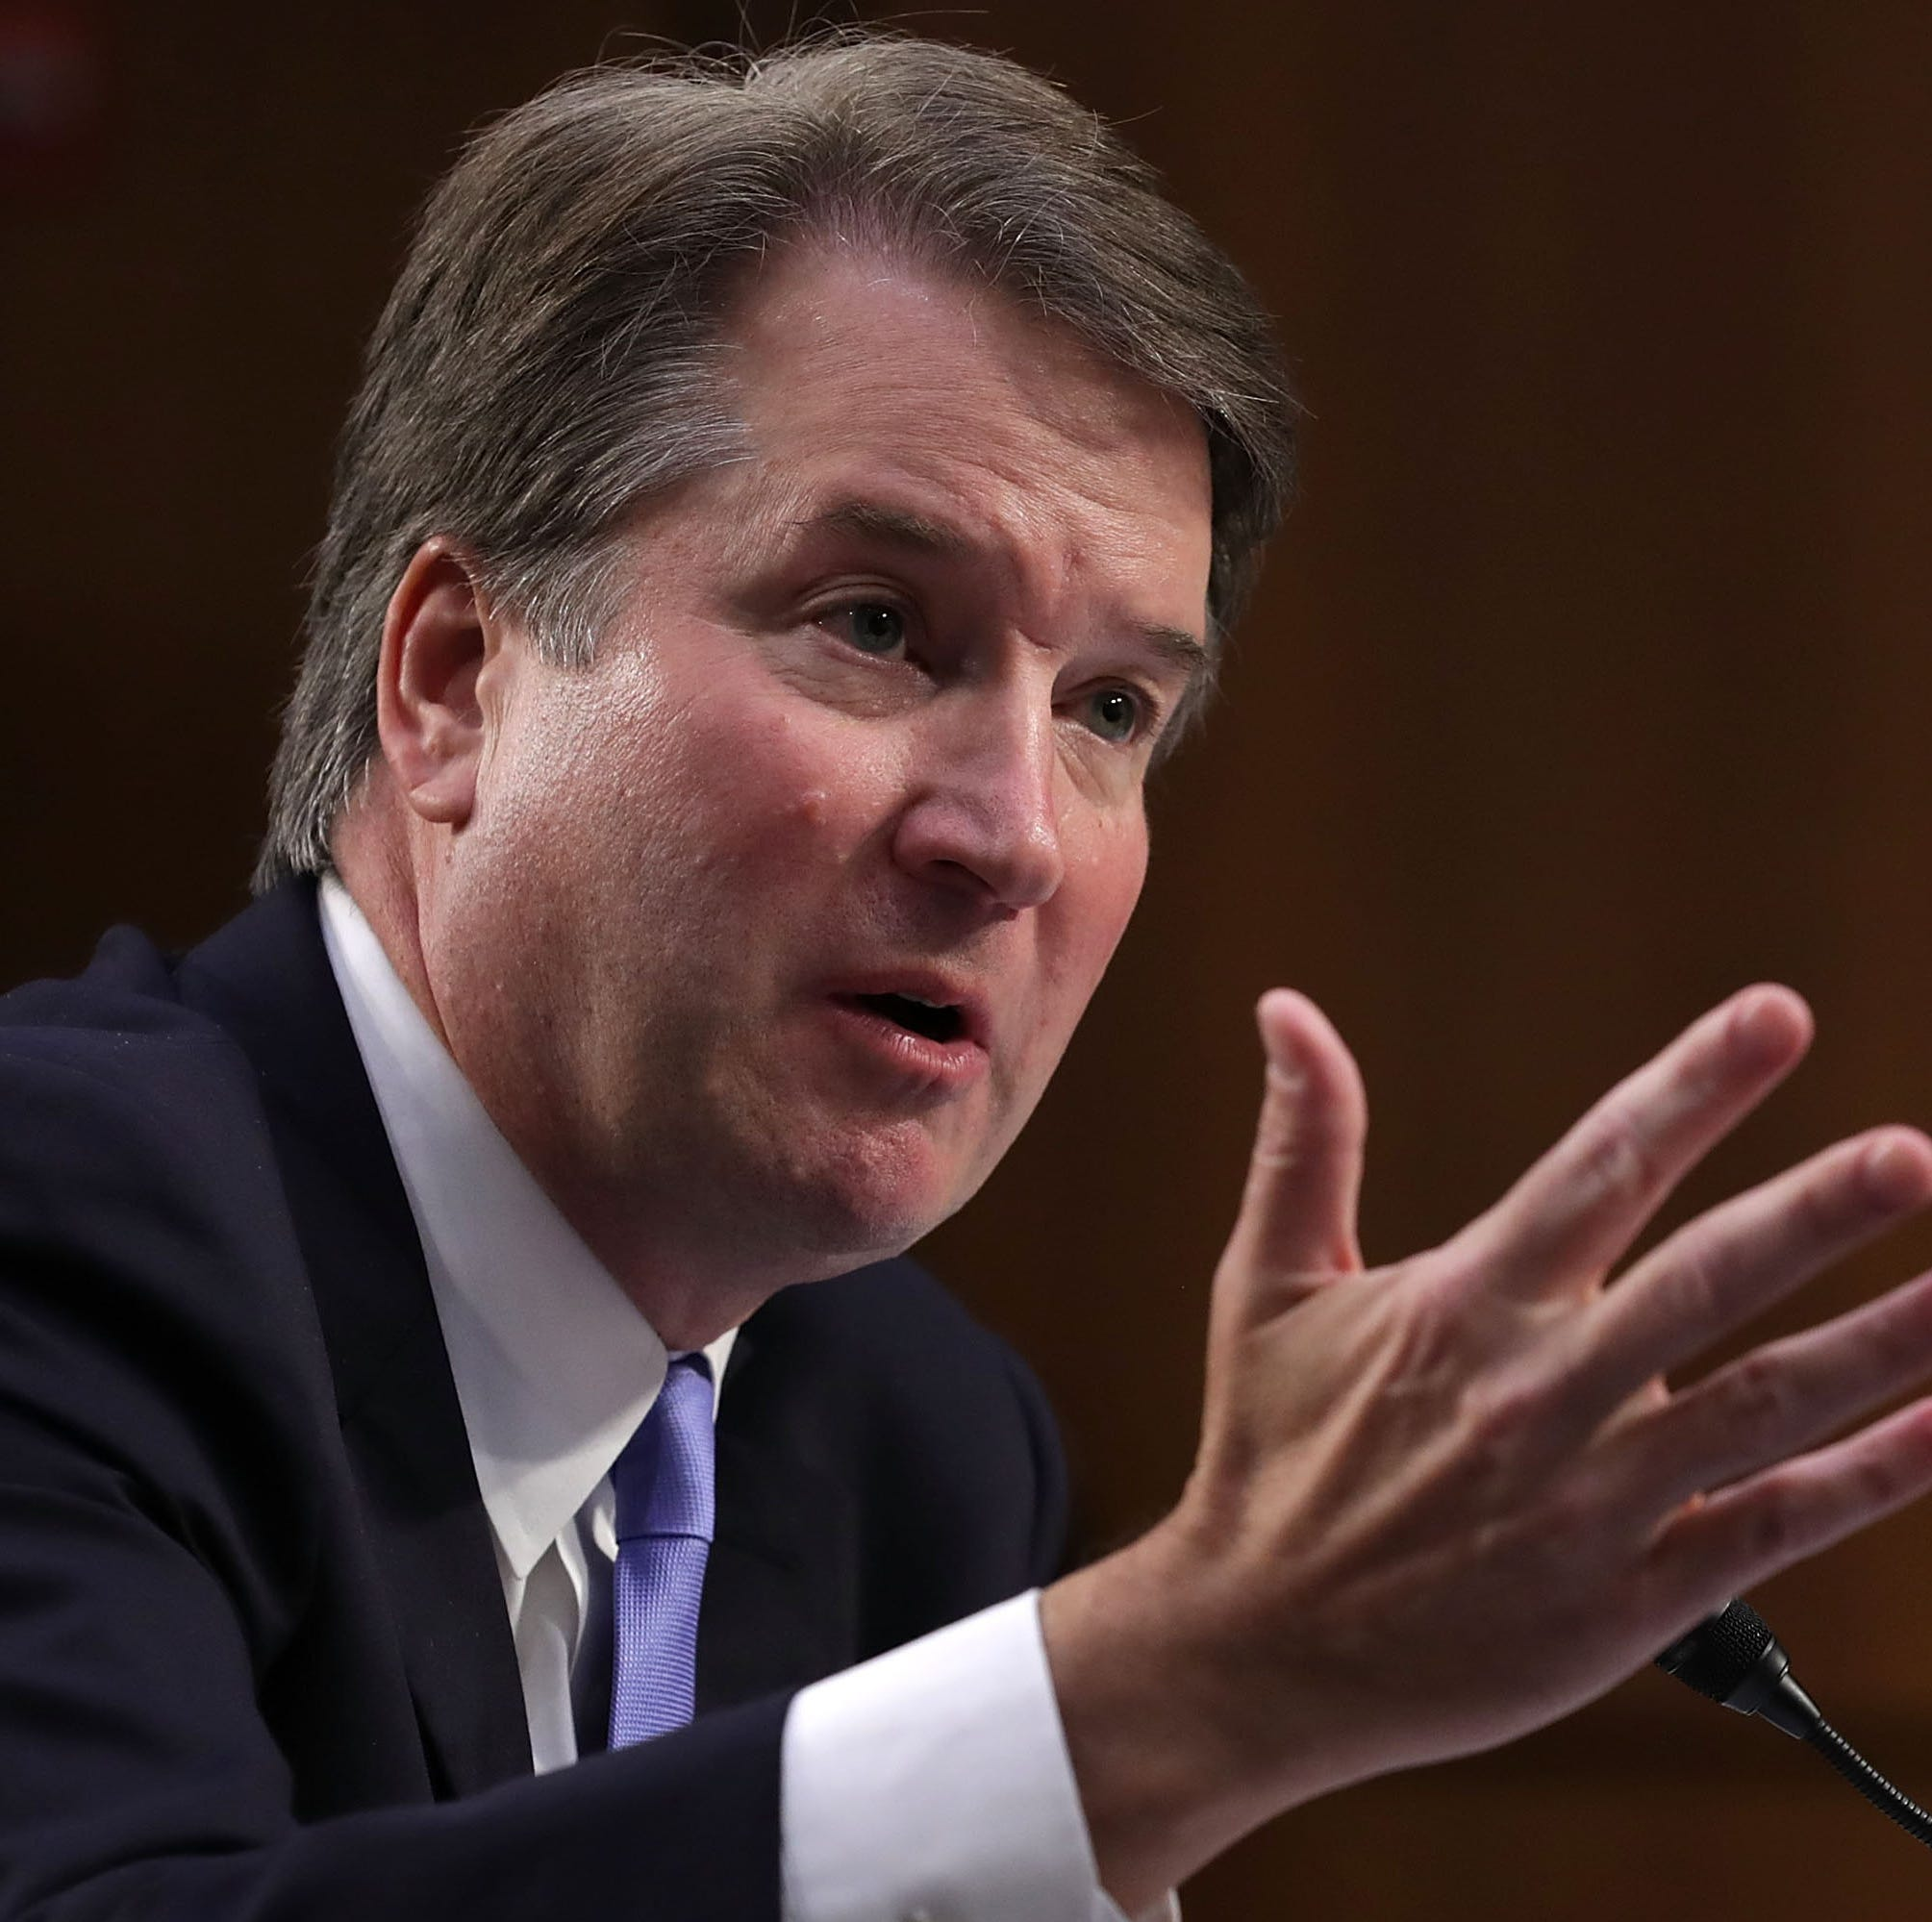 Maricopa County prosecutor seen as top pick to lead hearing for Brett Kavanaugh, accuser